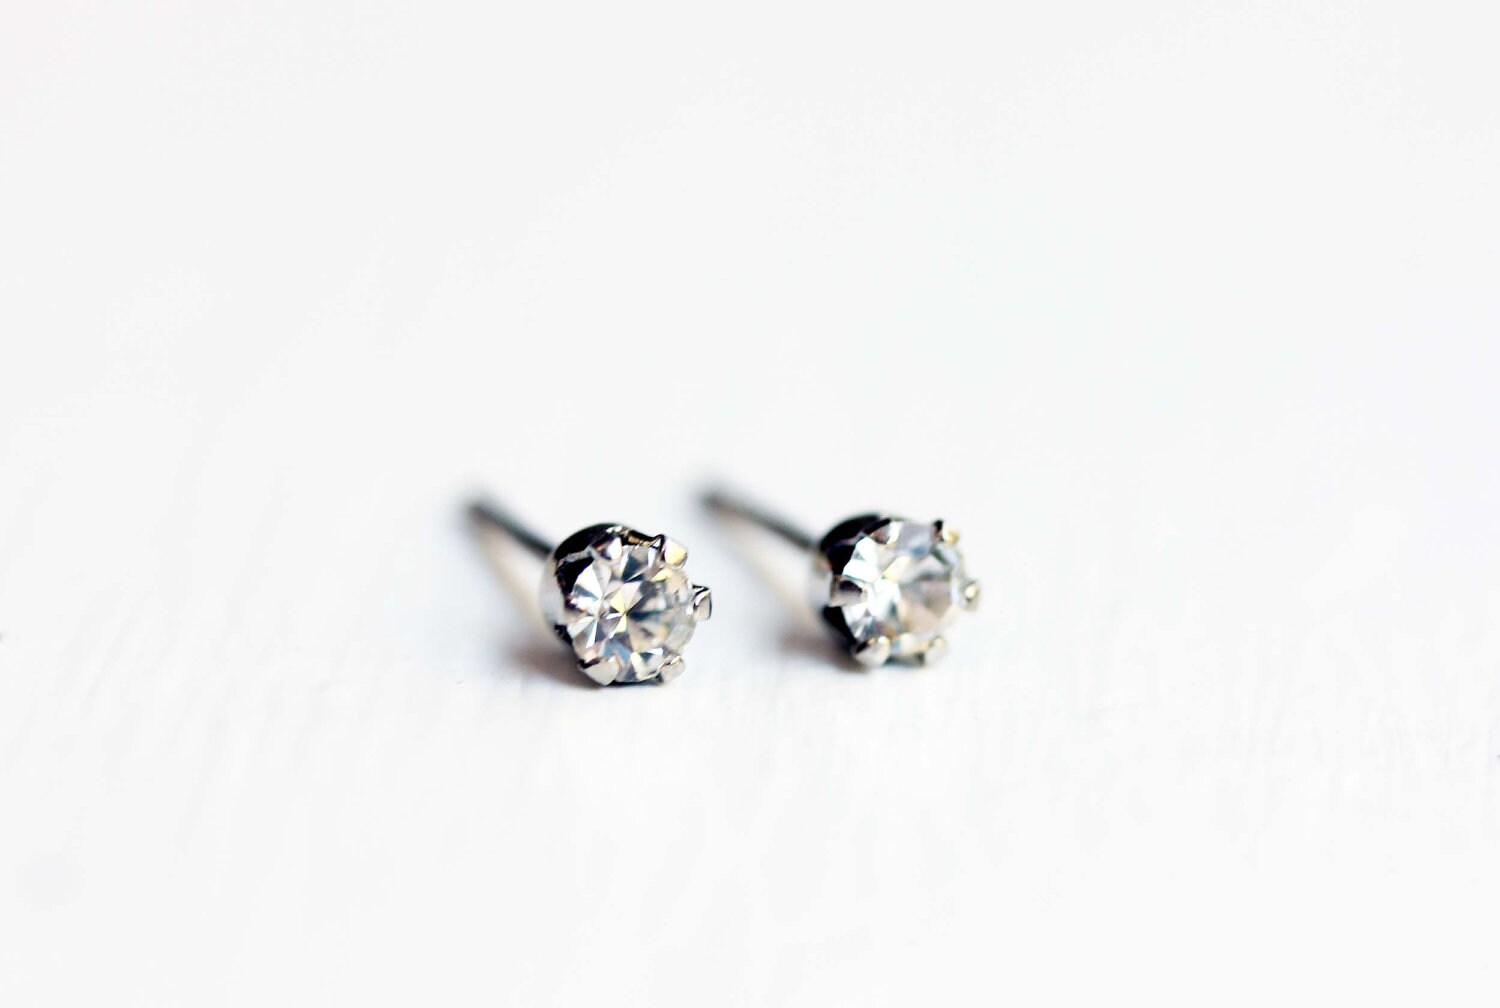 Tiny Diamond Stud Earrings For Second Hole